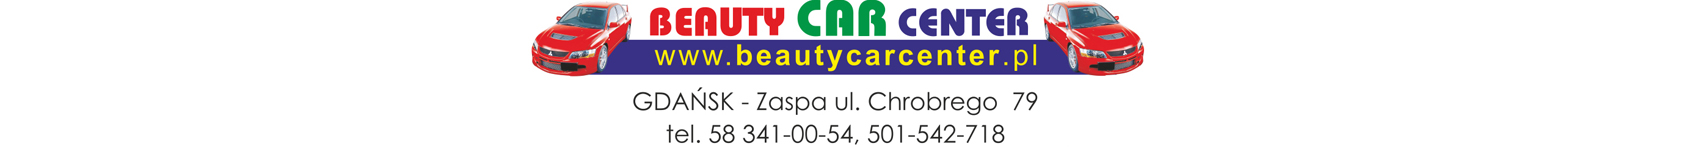 BEAUTY CAR CENTER